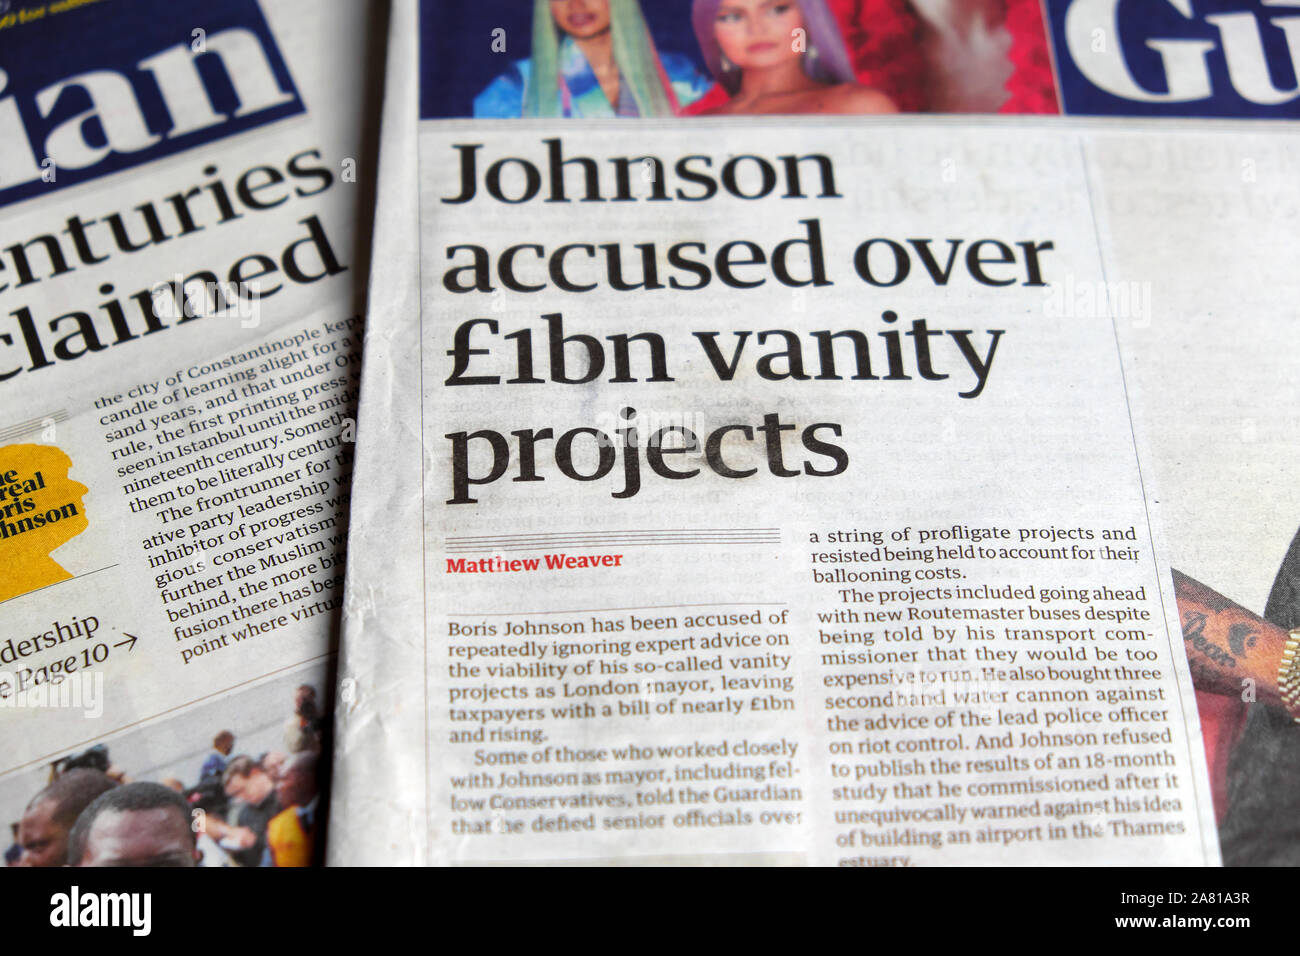 """Boris """"Johnson accused over £1bn vanity projects"""" in Guardian newspaper headline on front page 17 July 2019  London England UK Stock Photo"""